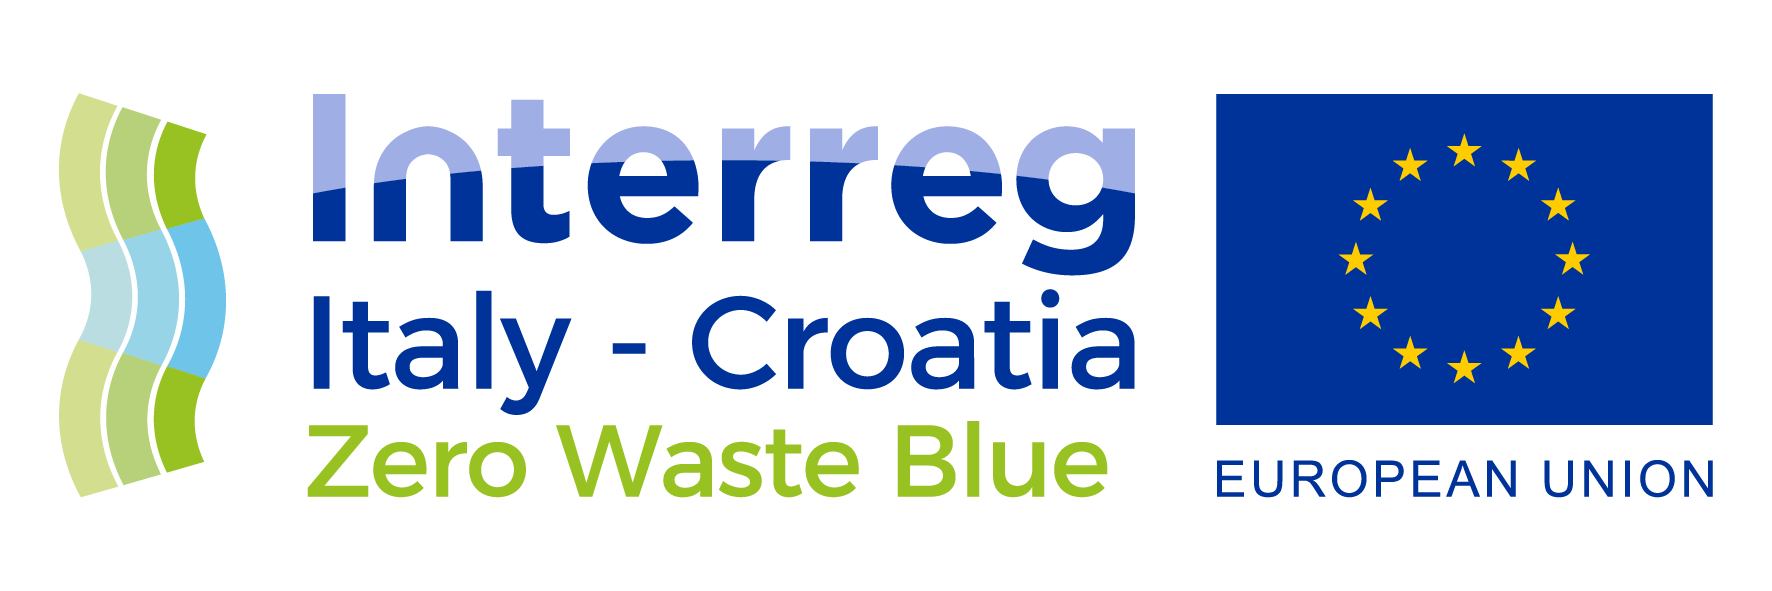 Interreg zero waste blu